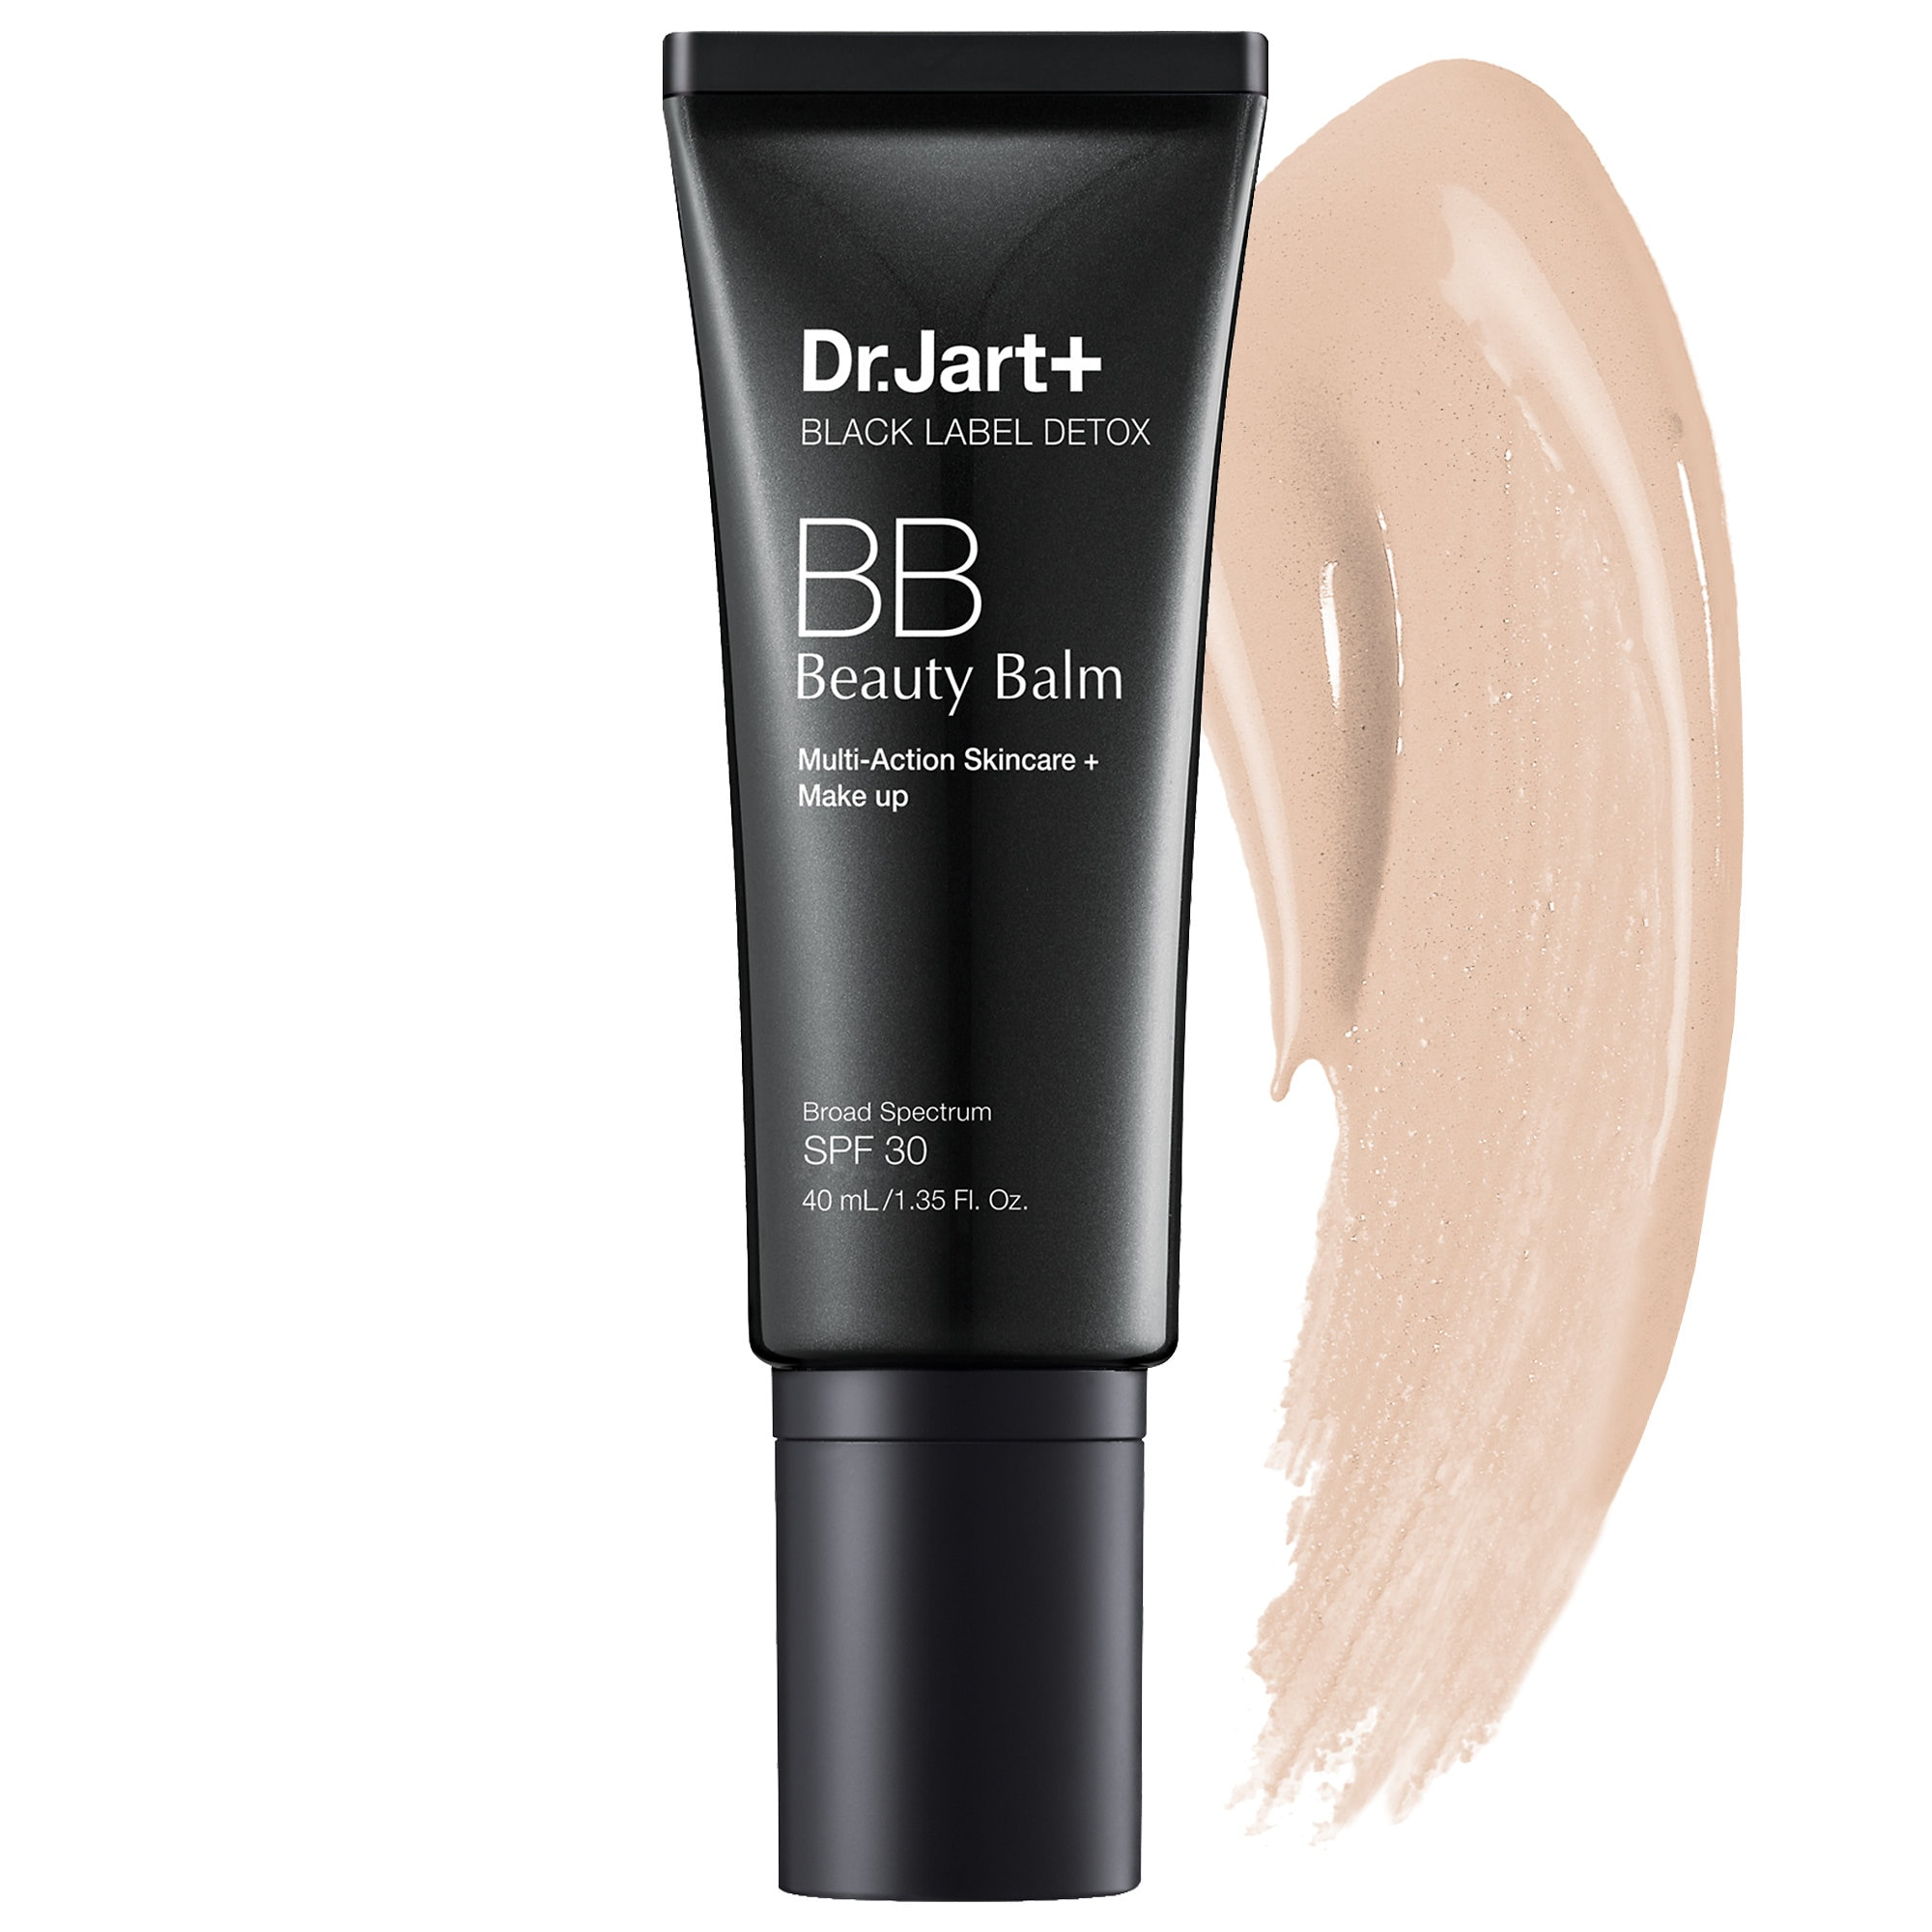 Dr. Jart+ - Black Label Detox BB Beauty Balm